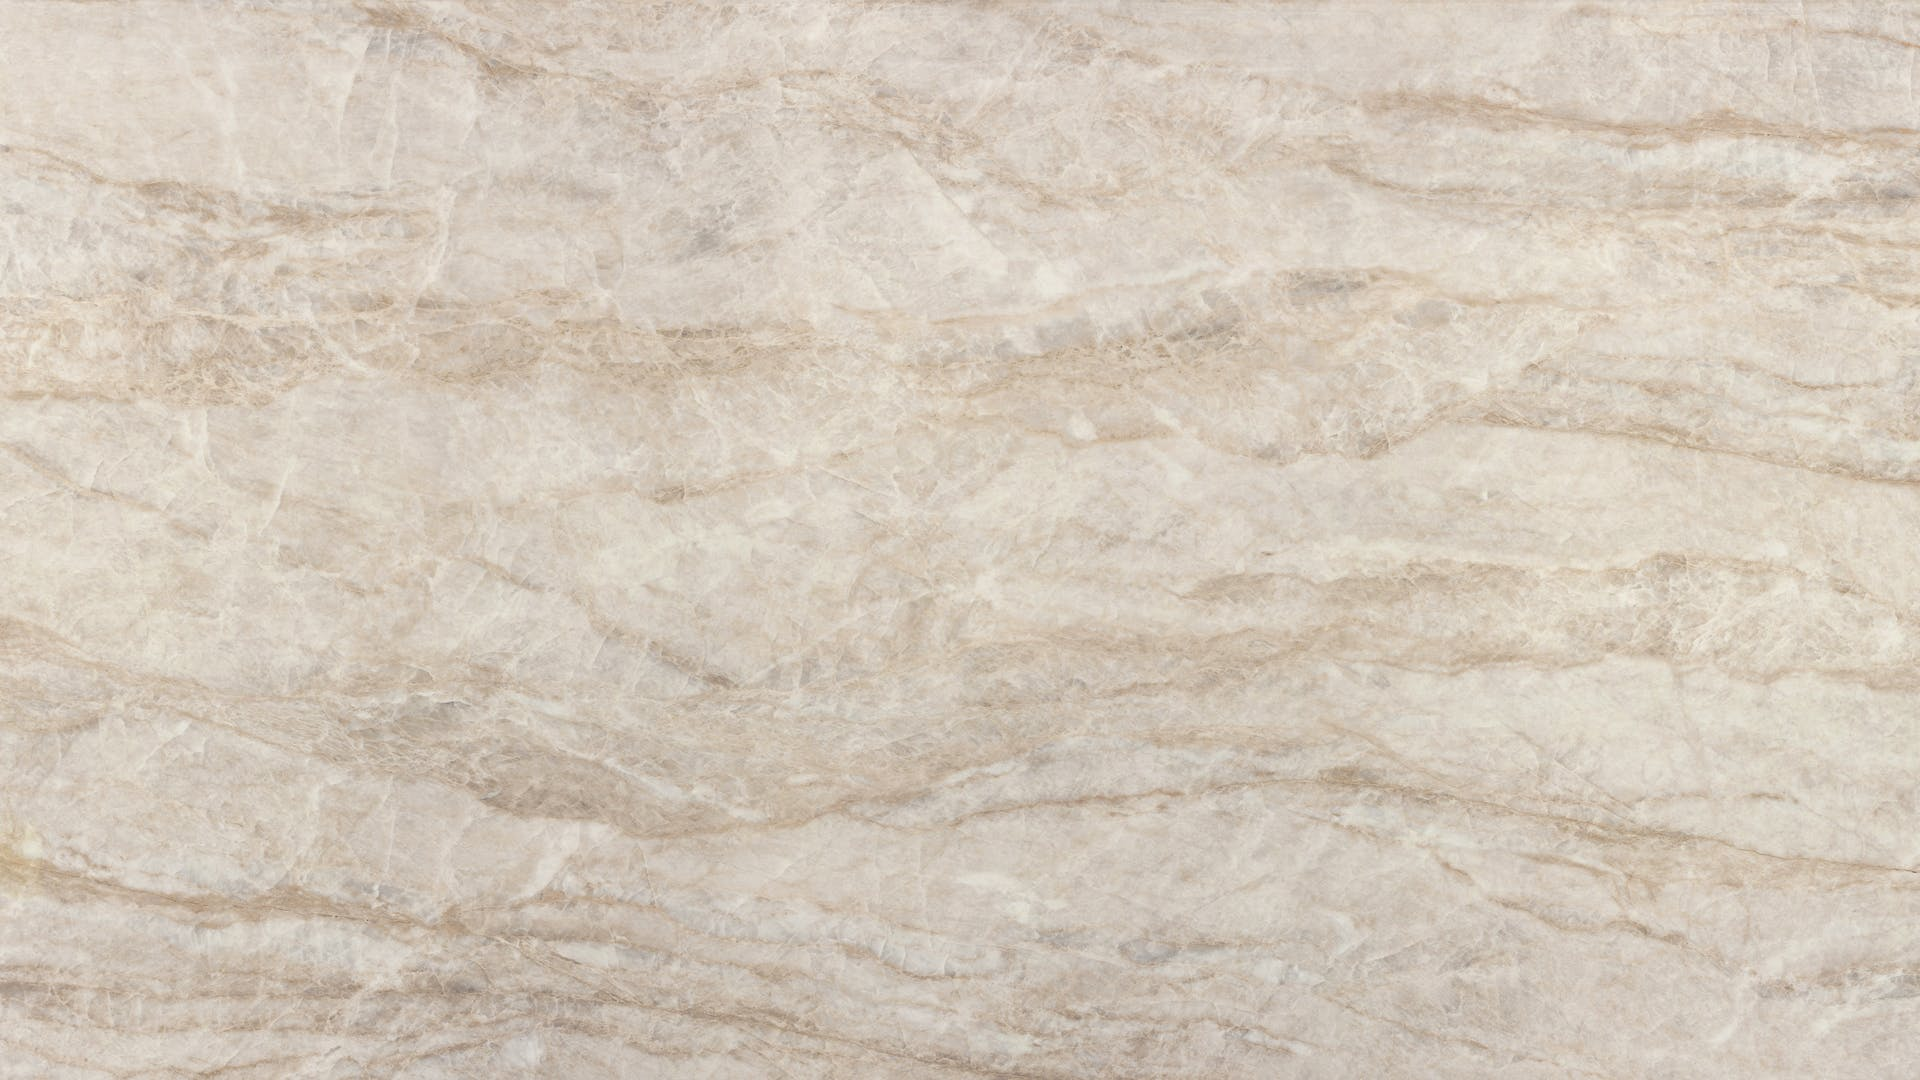 dekton arga finish is used in the parklane's rustic chic finish package by eggersmann